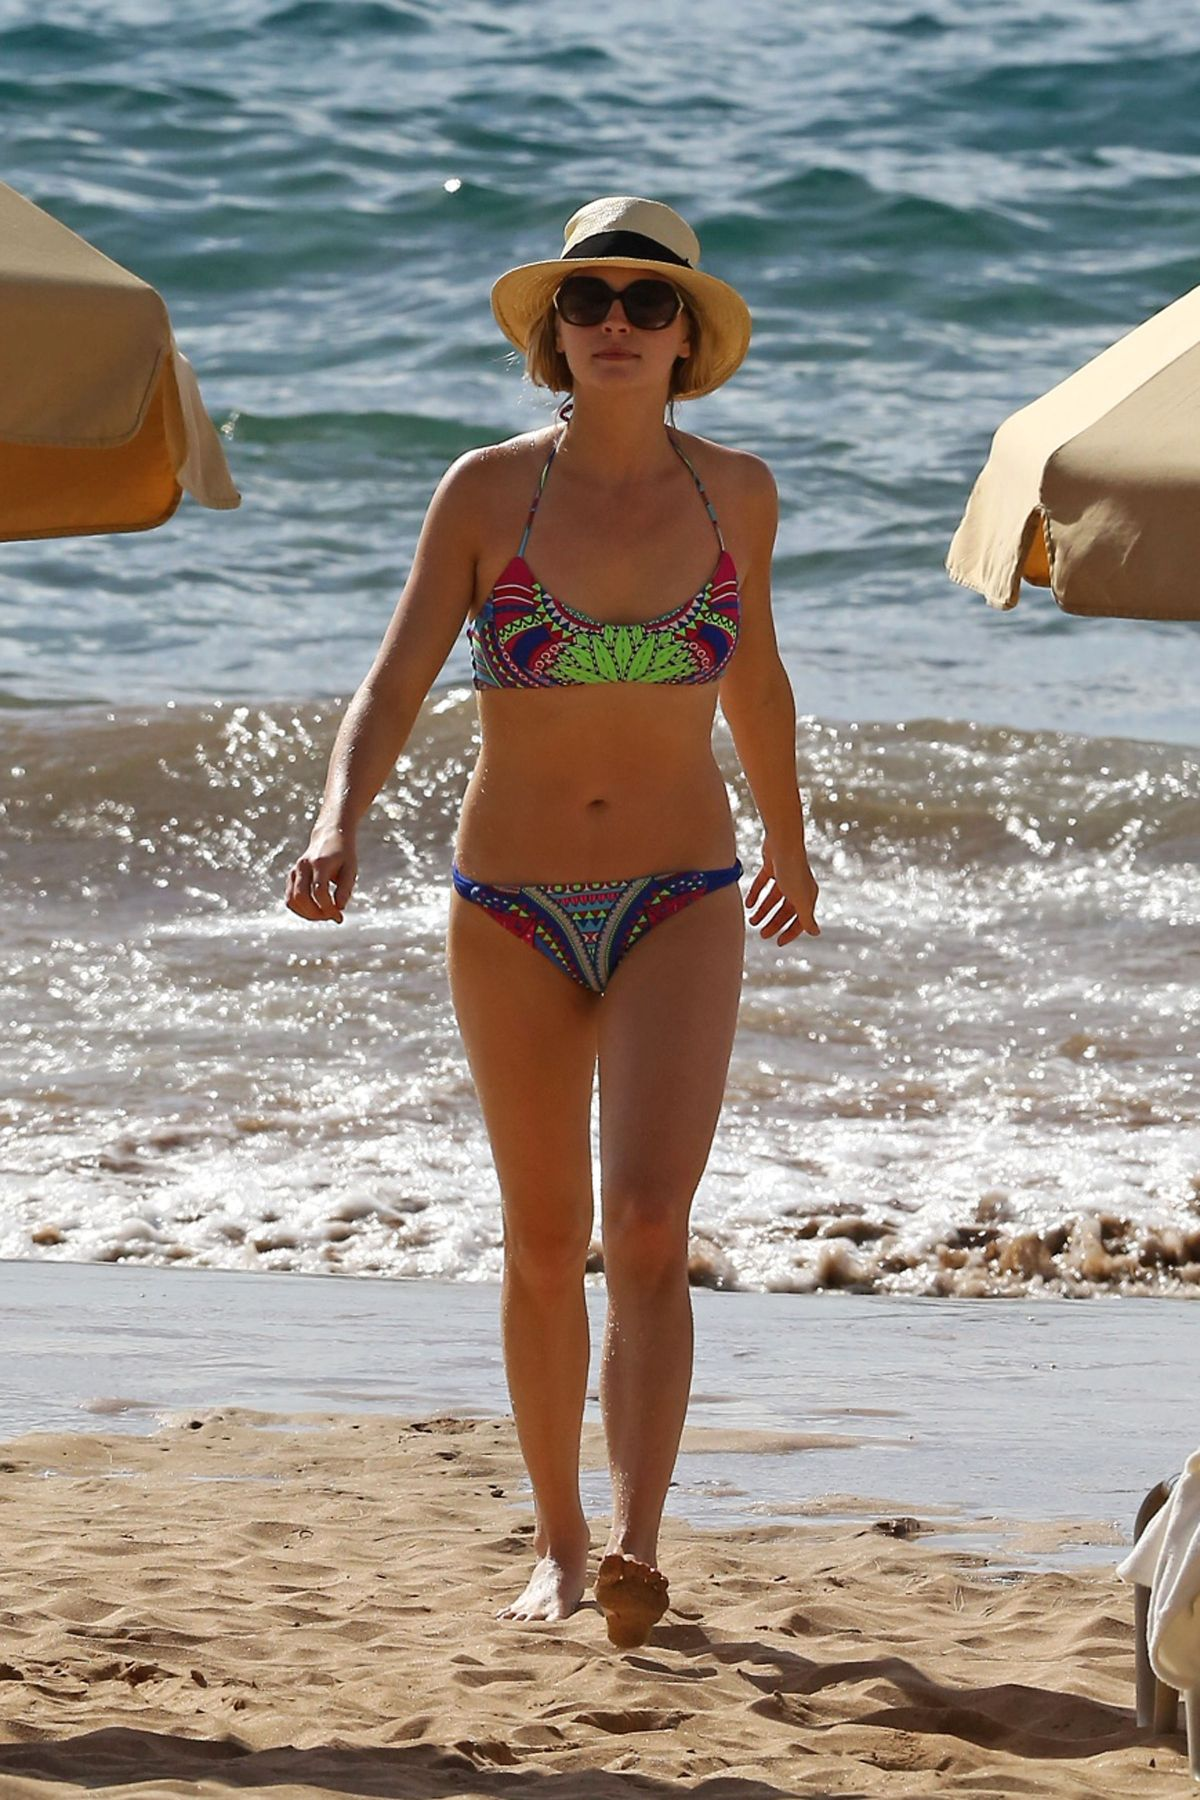 Candice Accola Wearing A Bikini At A Beach In Maui